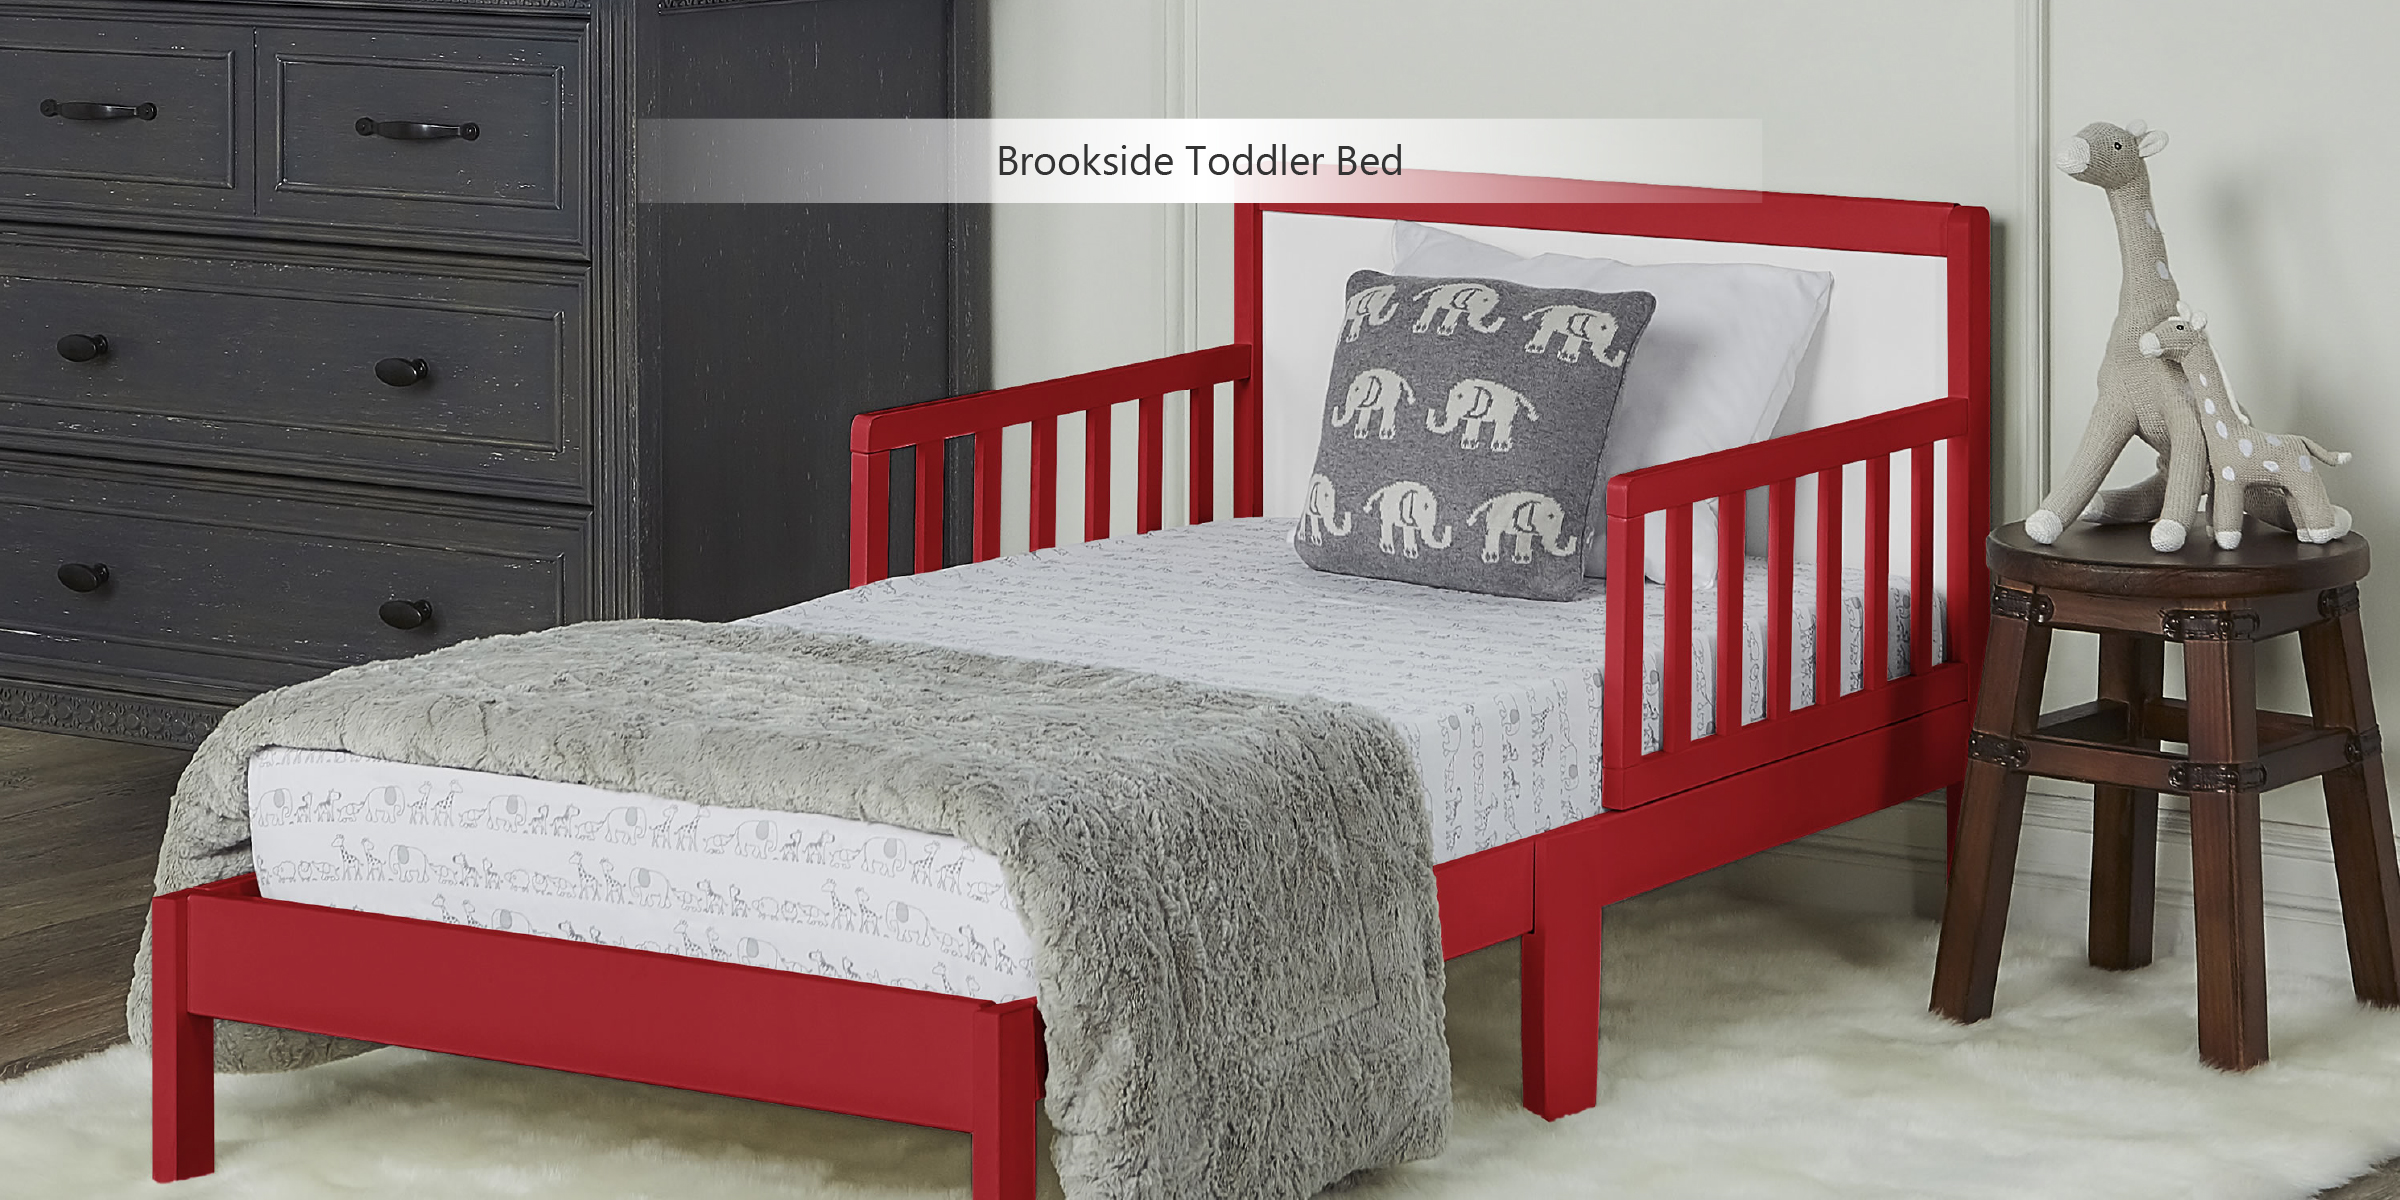 Brookside-Toddler-Bed